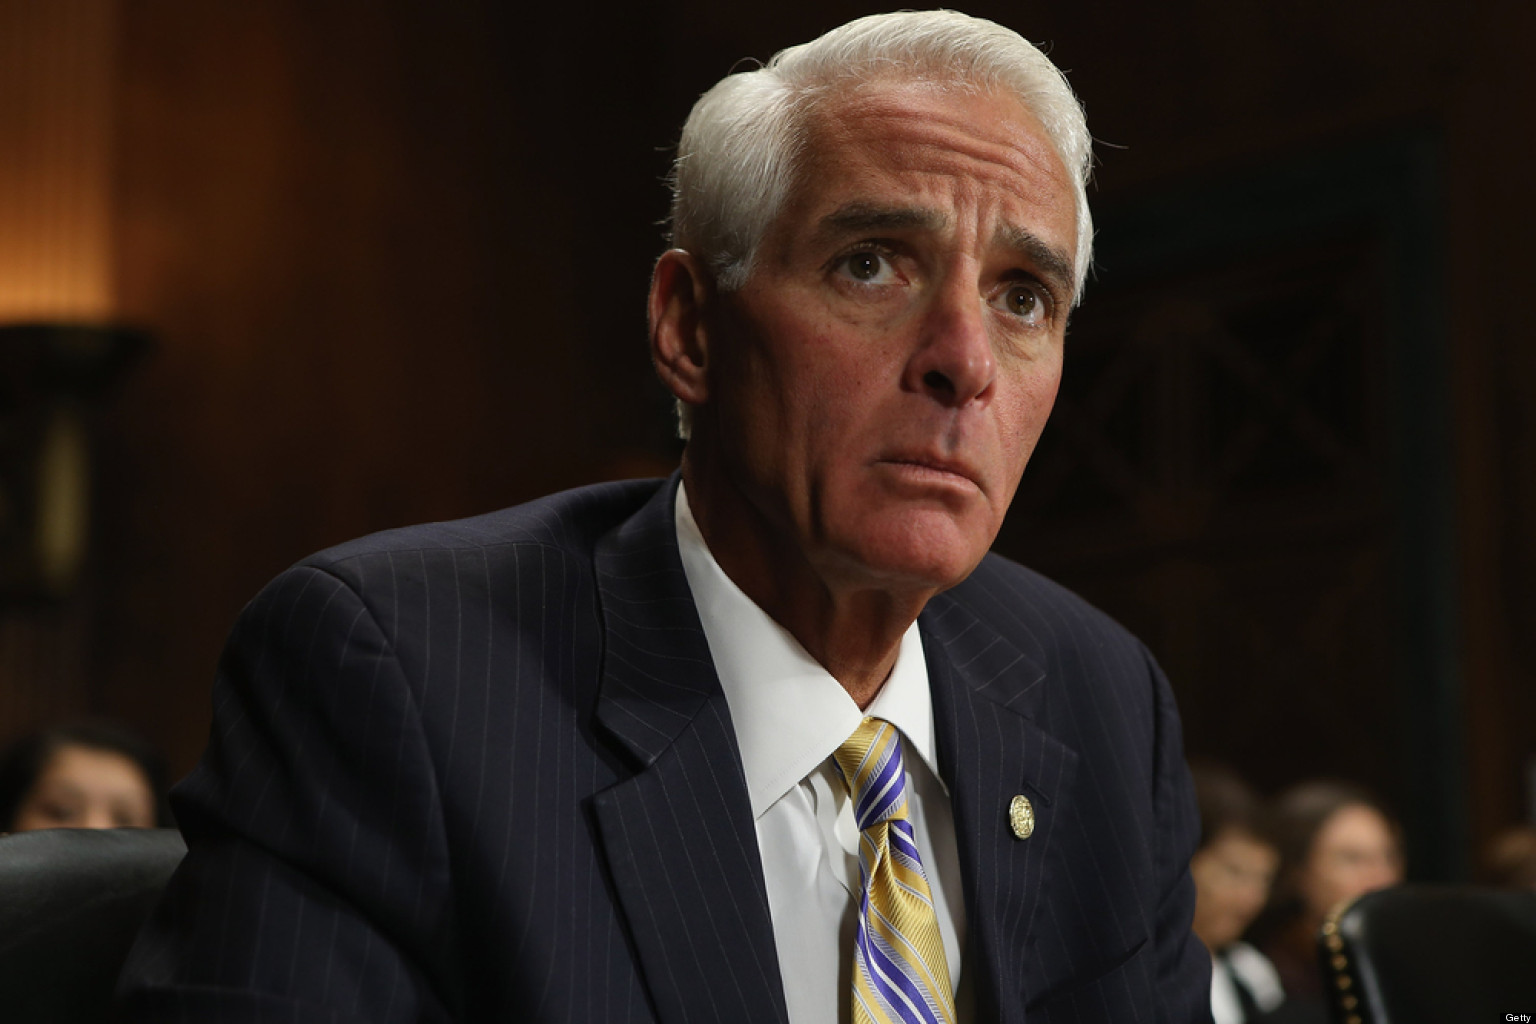 Charlie Crist Gubernatorial Bid Would Be 'Disaster,' Says Former Dem Contender Alex Sink - o-CHARLIE-CRIST-DISASTER-ALEX-SINK-facebook